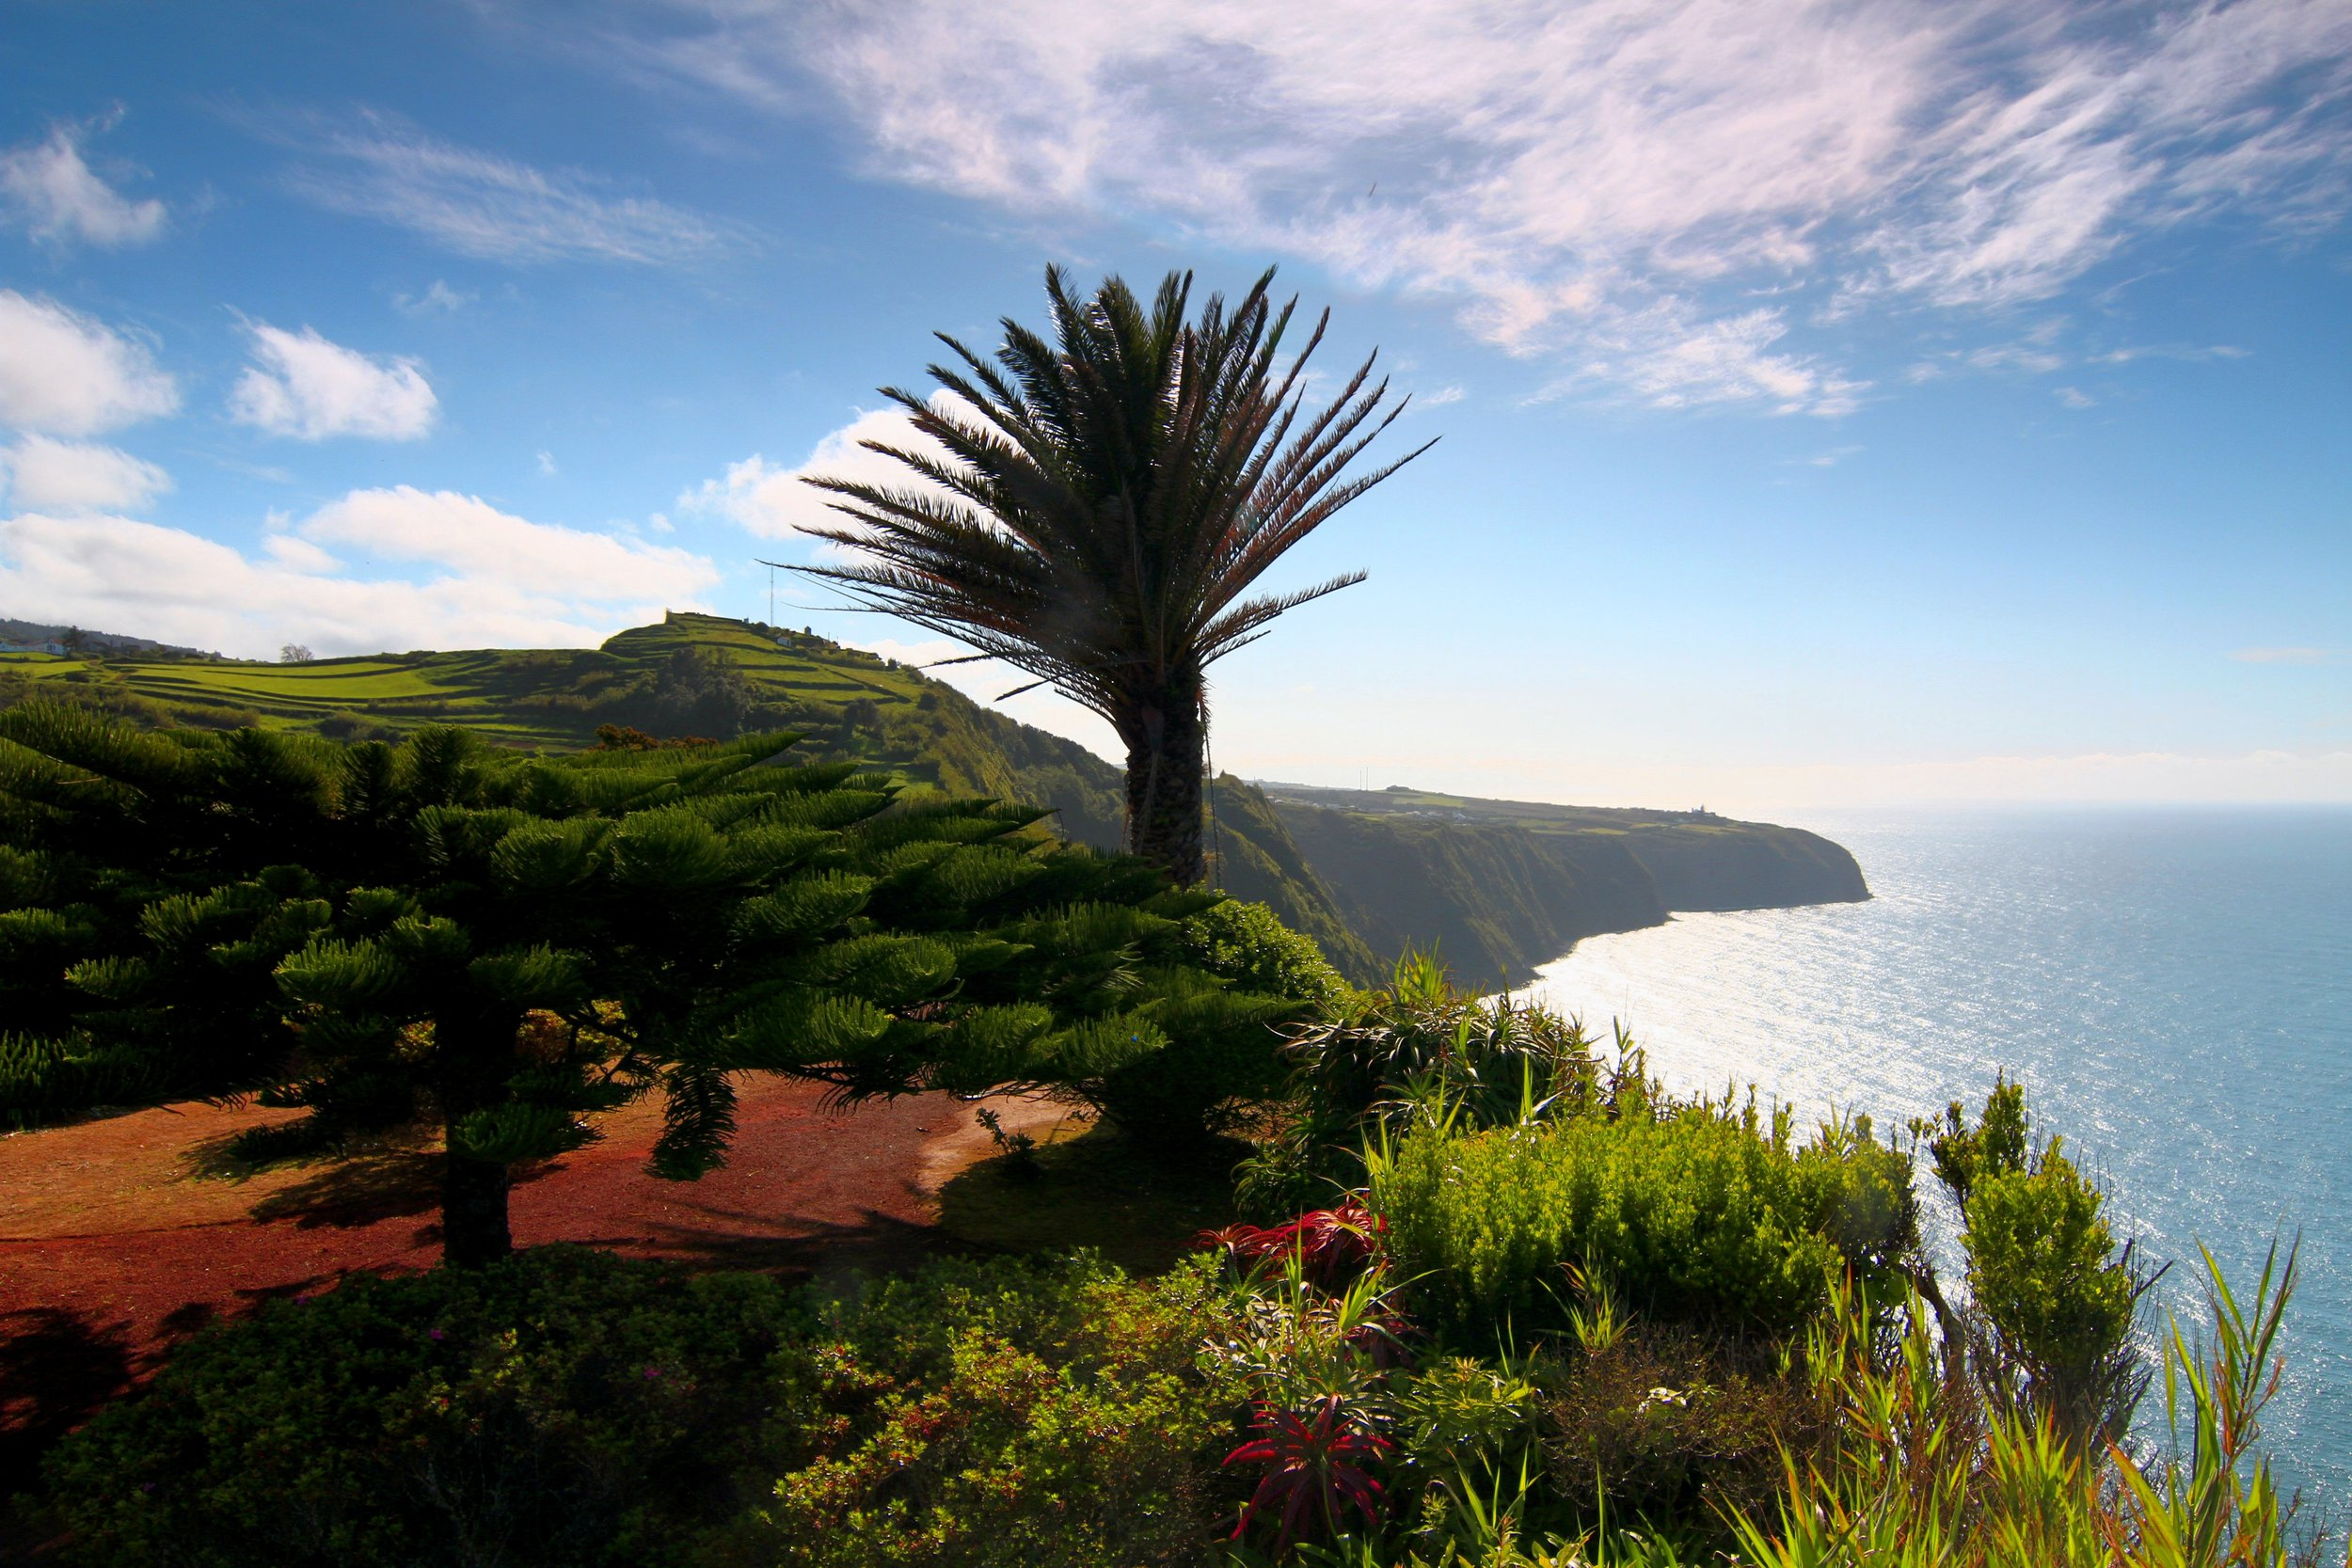 Superb viewpoint on the North coast overlooking the cliffs and ocean.